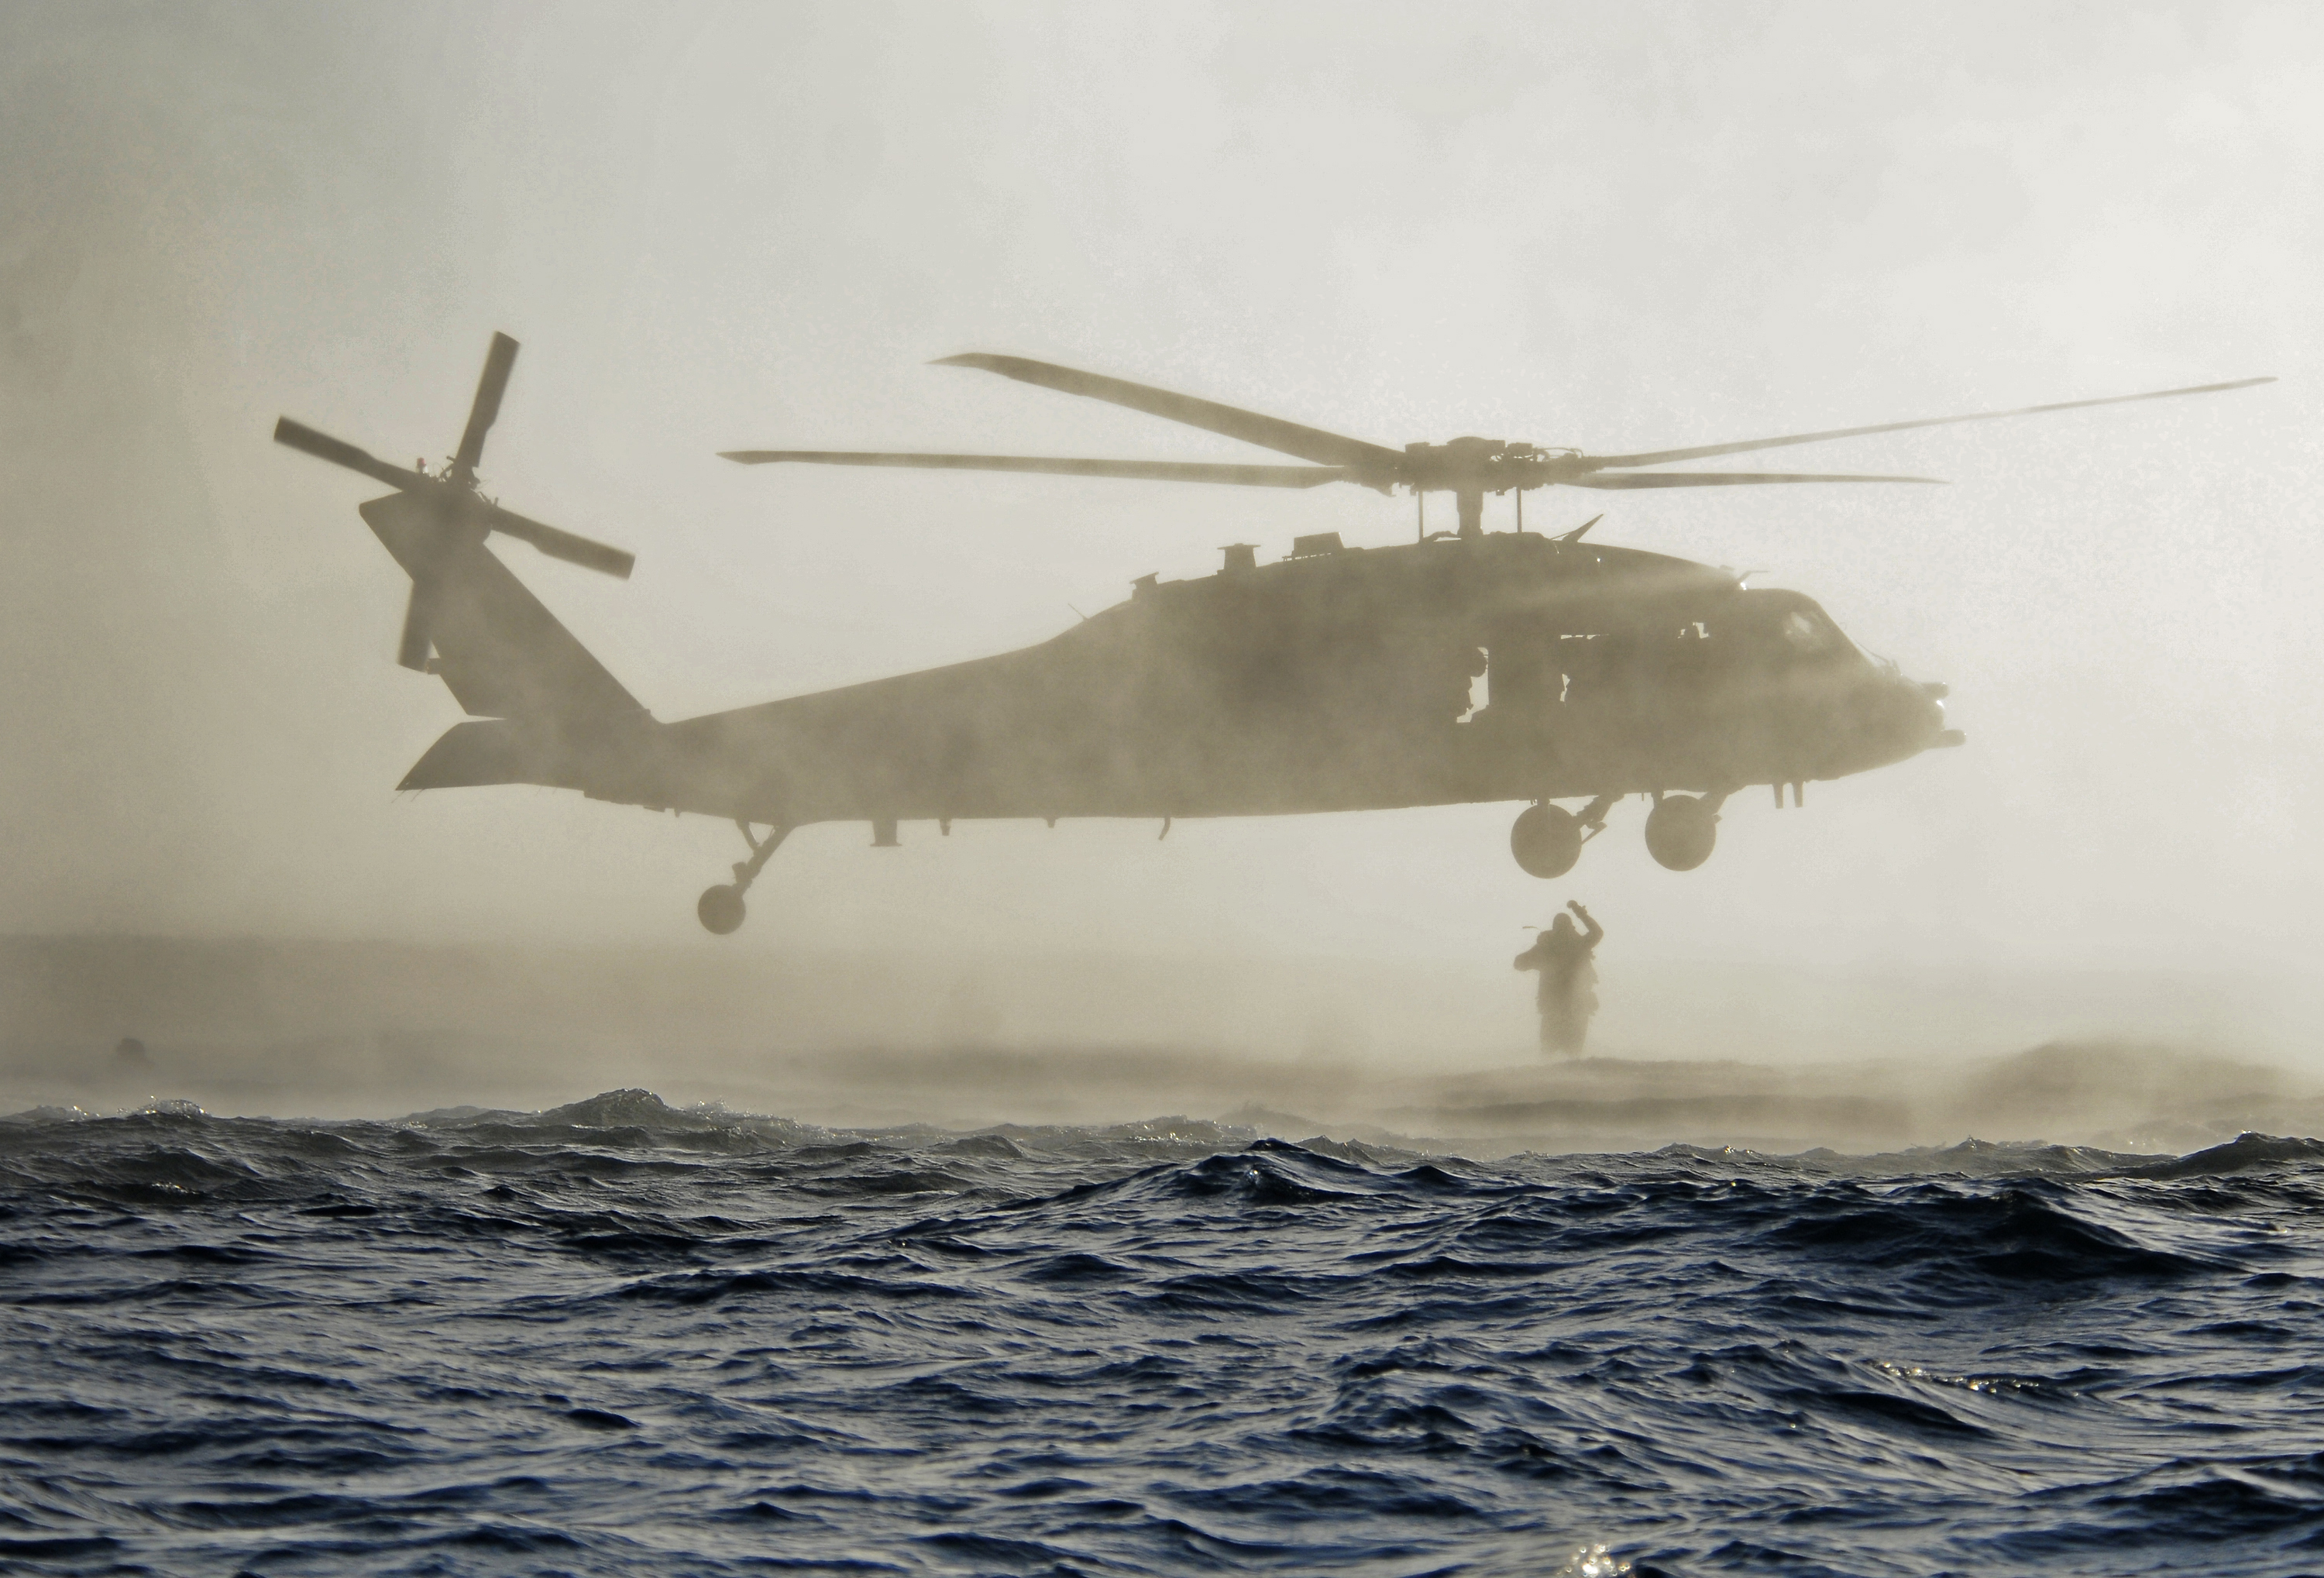 SAN DIEGO (May 2, 2013) U.S. Navy SEALs jump out of an SH-60 Sea Hawk helicopter during a combat diver course. Navy SEALs are the maritime component of U.S. Special Operations Forces and are trained to conduct a variety of operations from the sea, air and land. (U.S. Navy photo by Mass Communication Specialist 1st Class Michael Russell/Released)